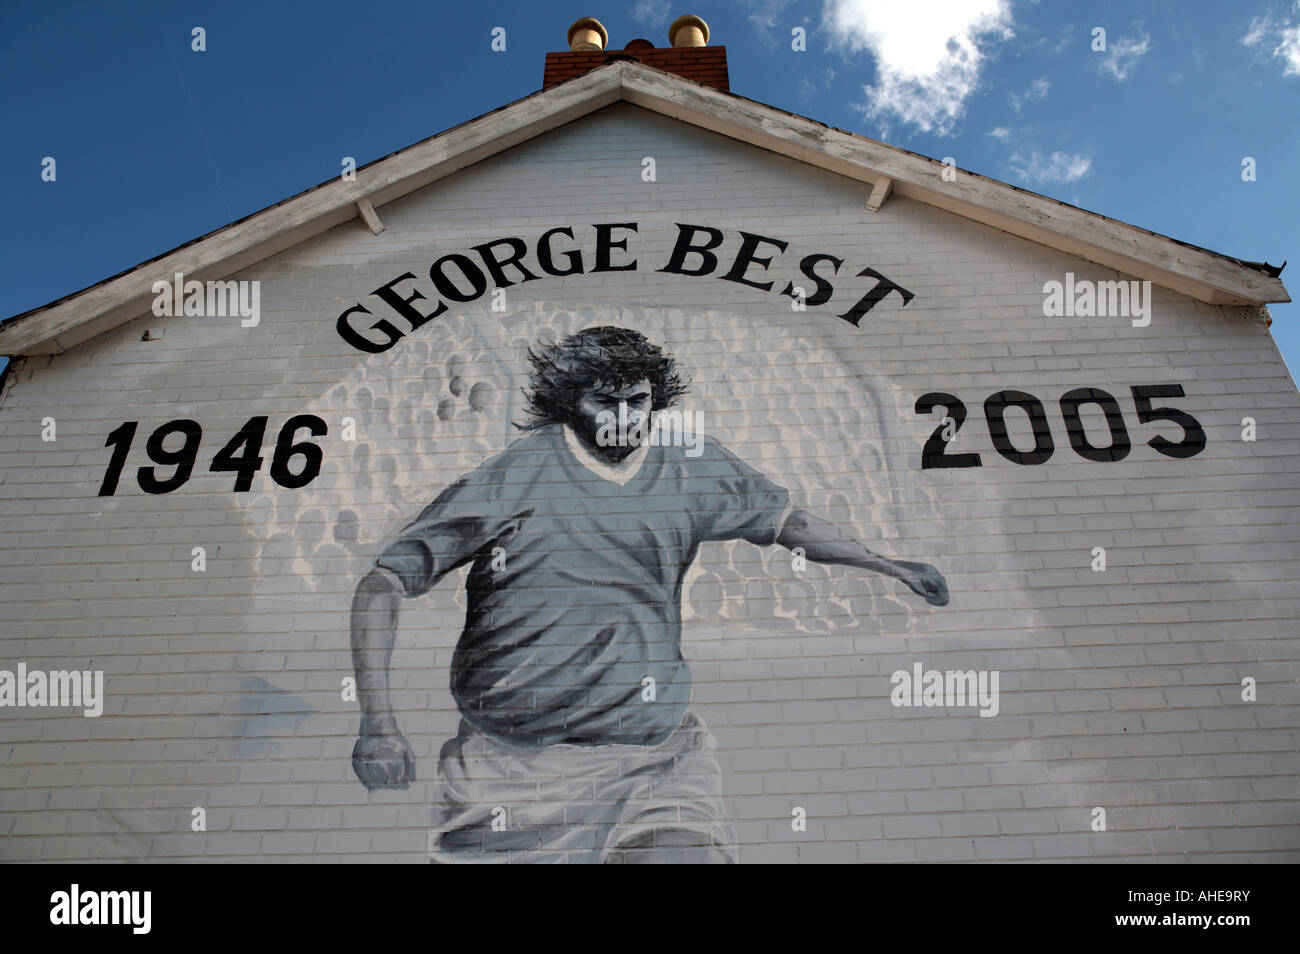 Exterior Wall Mural The George Best Memorial Mural On The Lower Cregagh Road